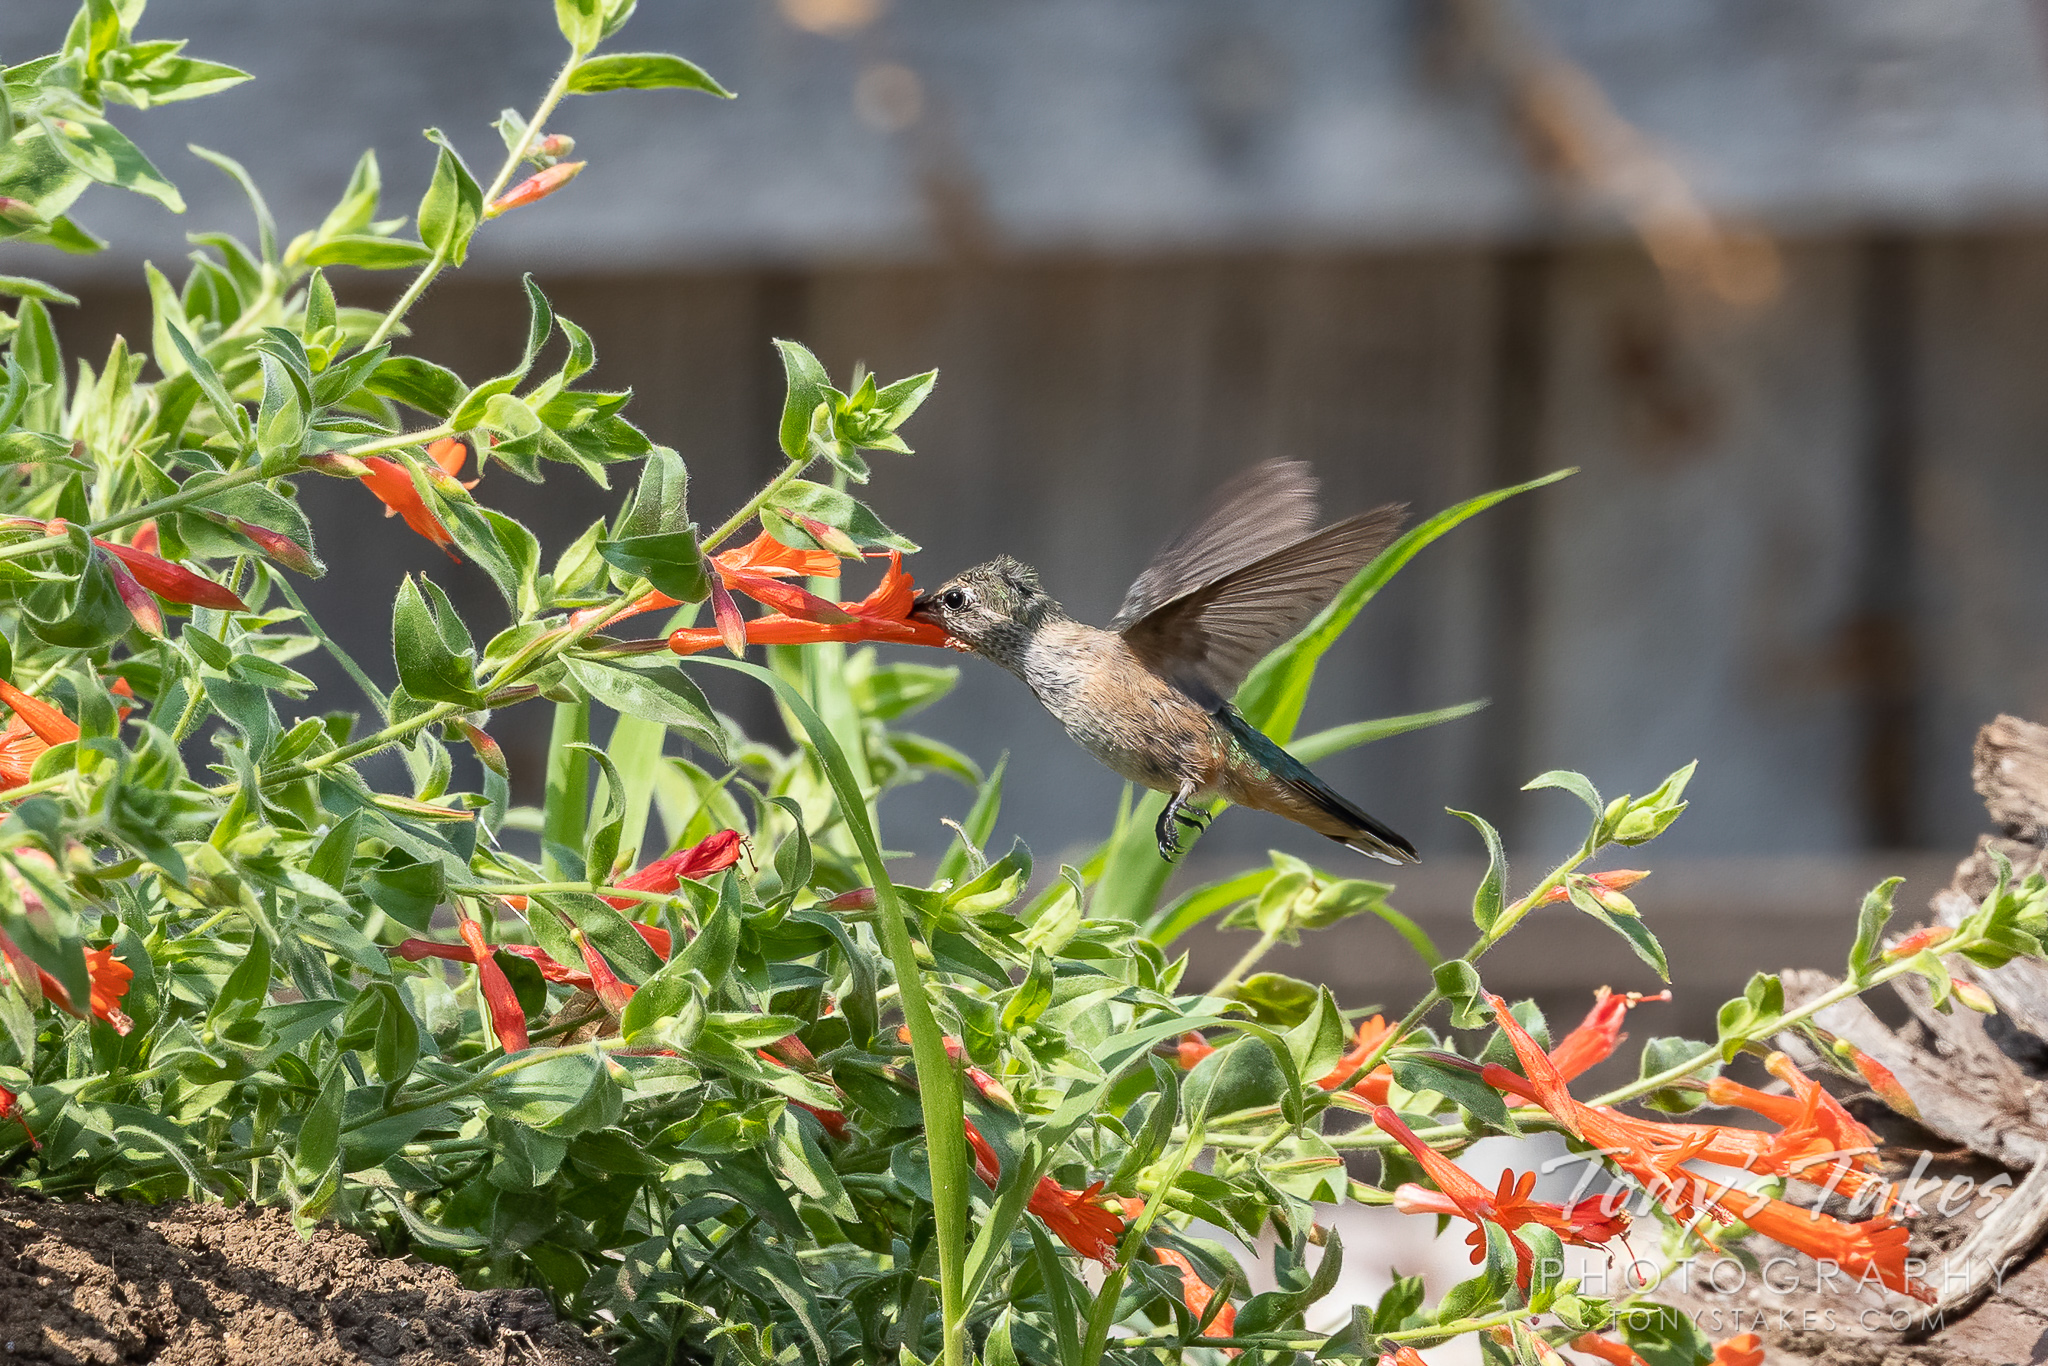 A hummingbird gets a drink from a zauschneria. (© Tony's Takes)